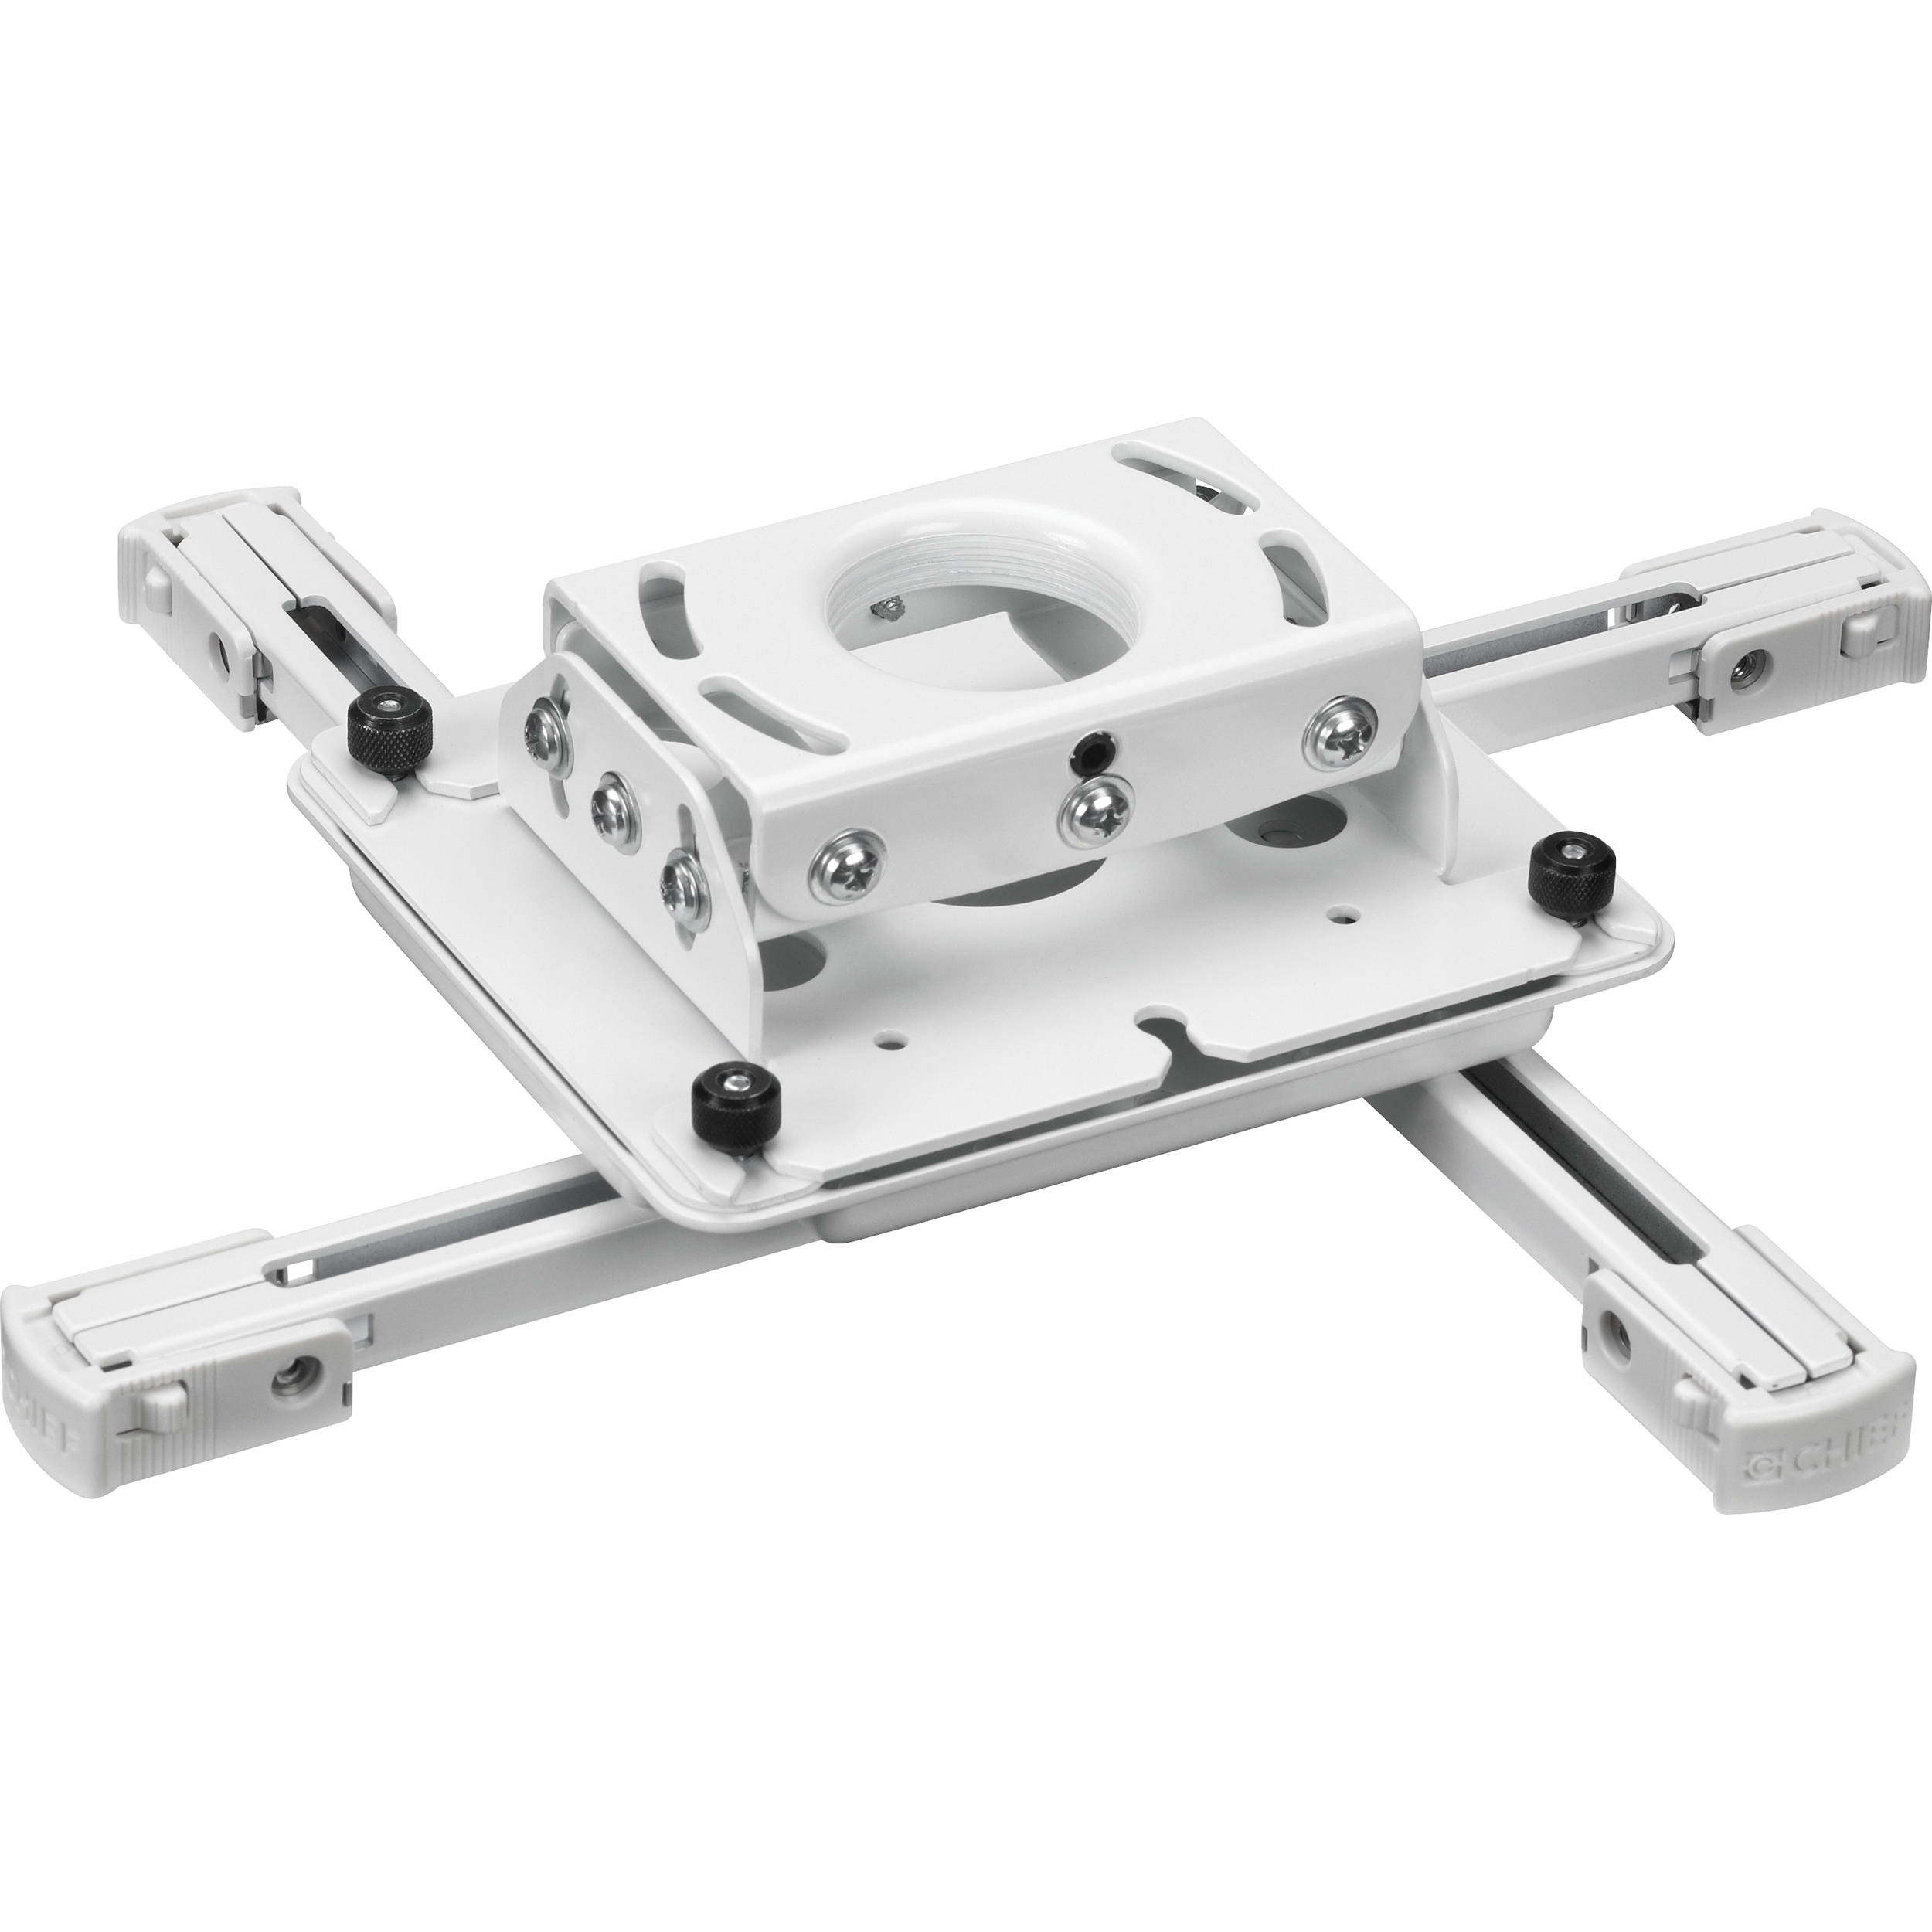 Chief Rpauw Inverted Lcd Dlp Projector Ceiling Mount Rpauw B Amp H